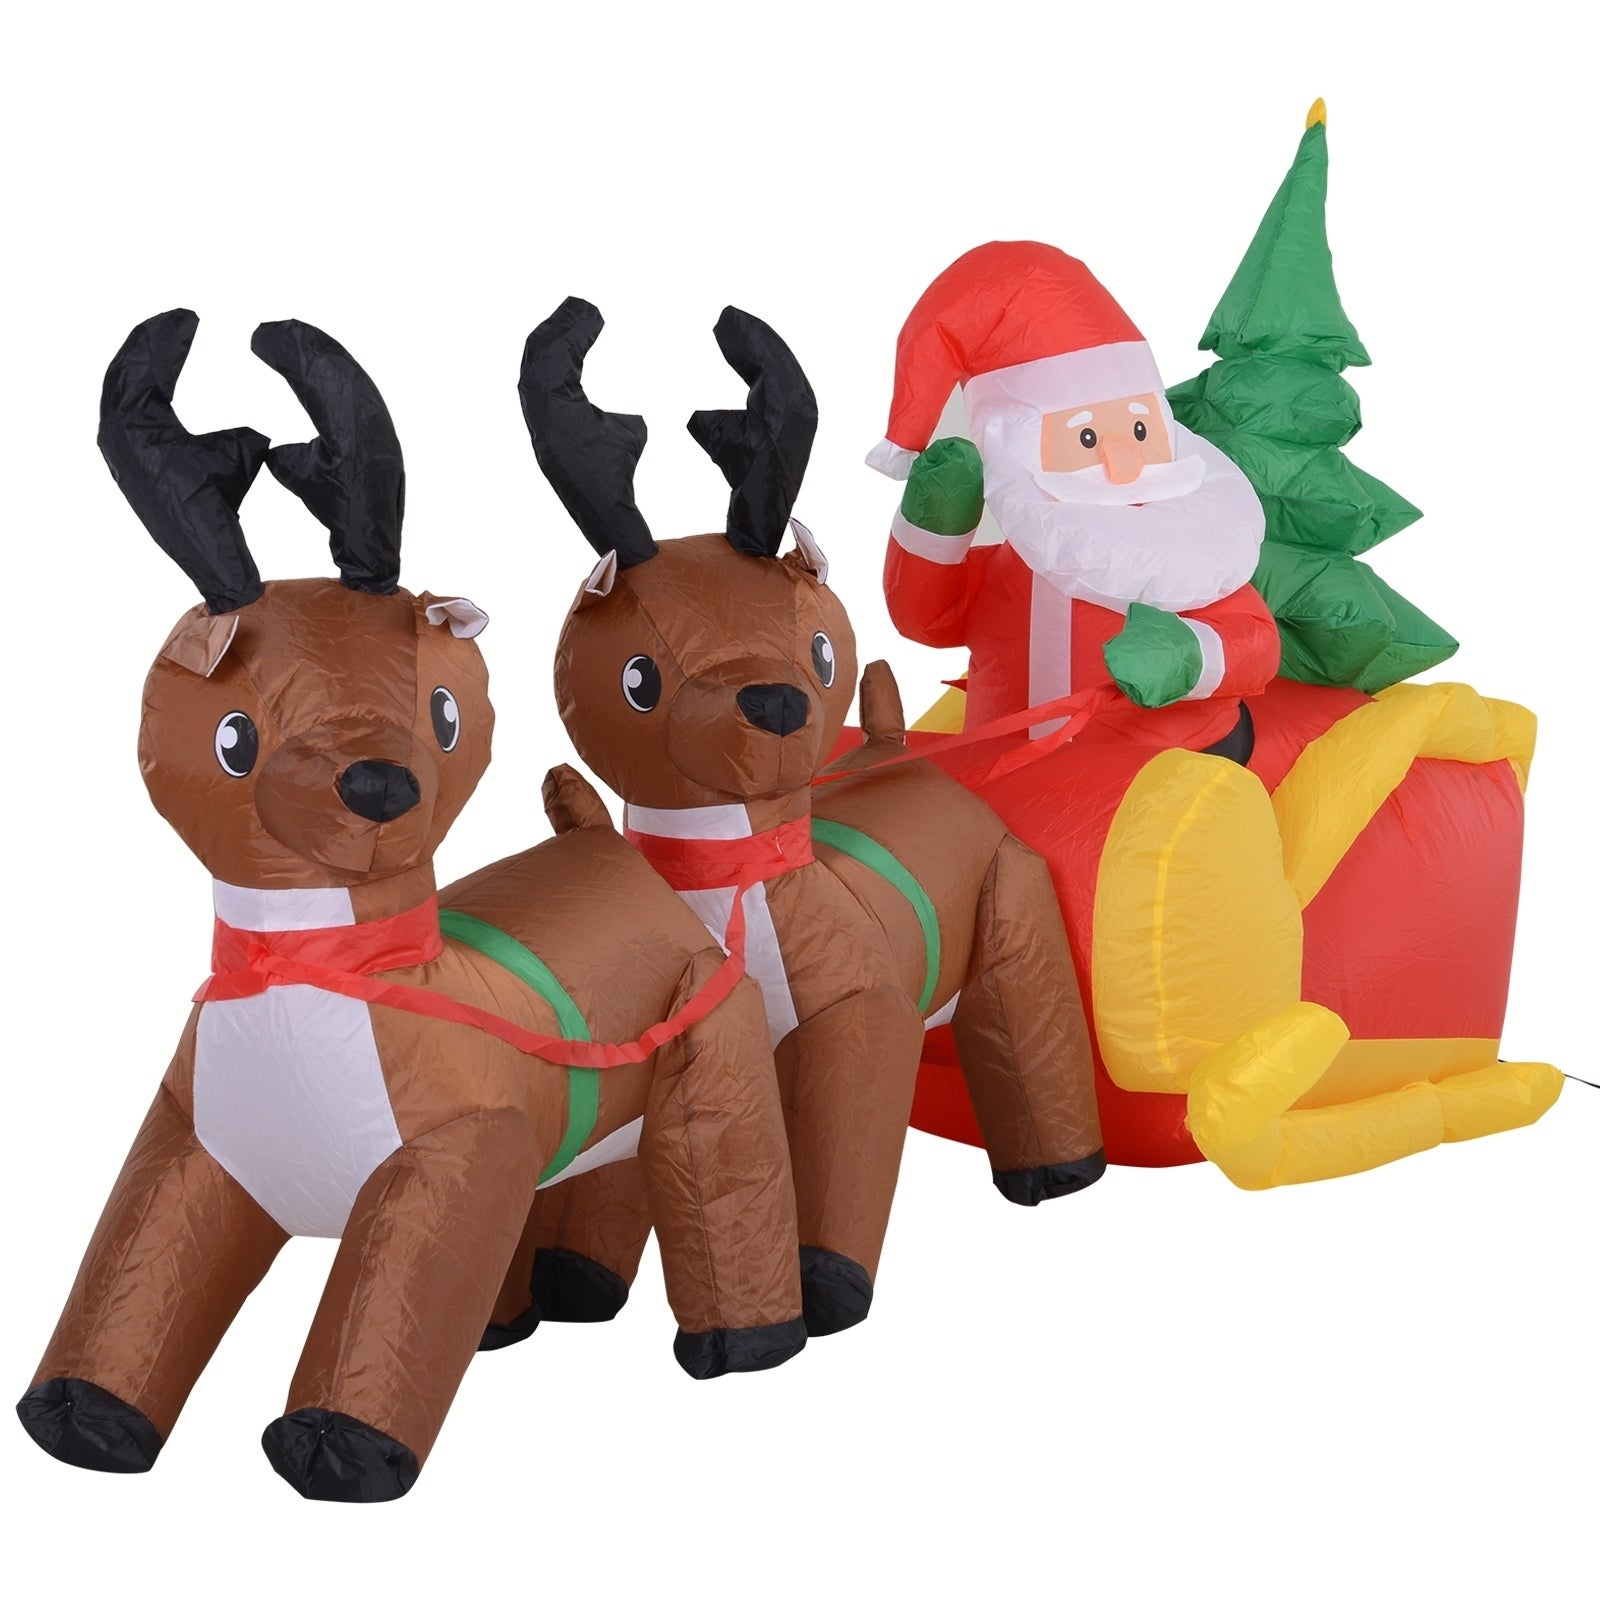 7 Long Outdoor Lighted Airblown Inflatable Christmas Lawn Decoration Santa s Sleigh & Reindeer